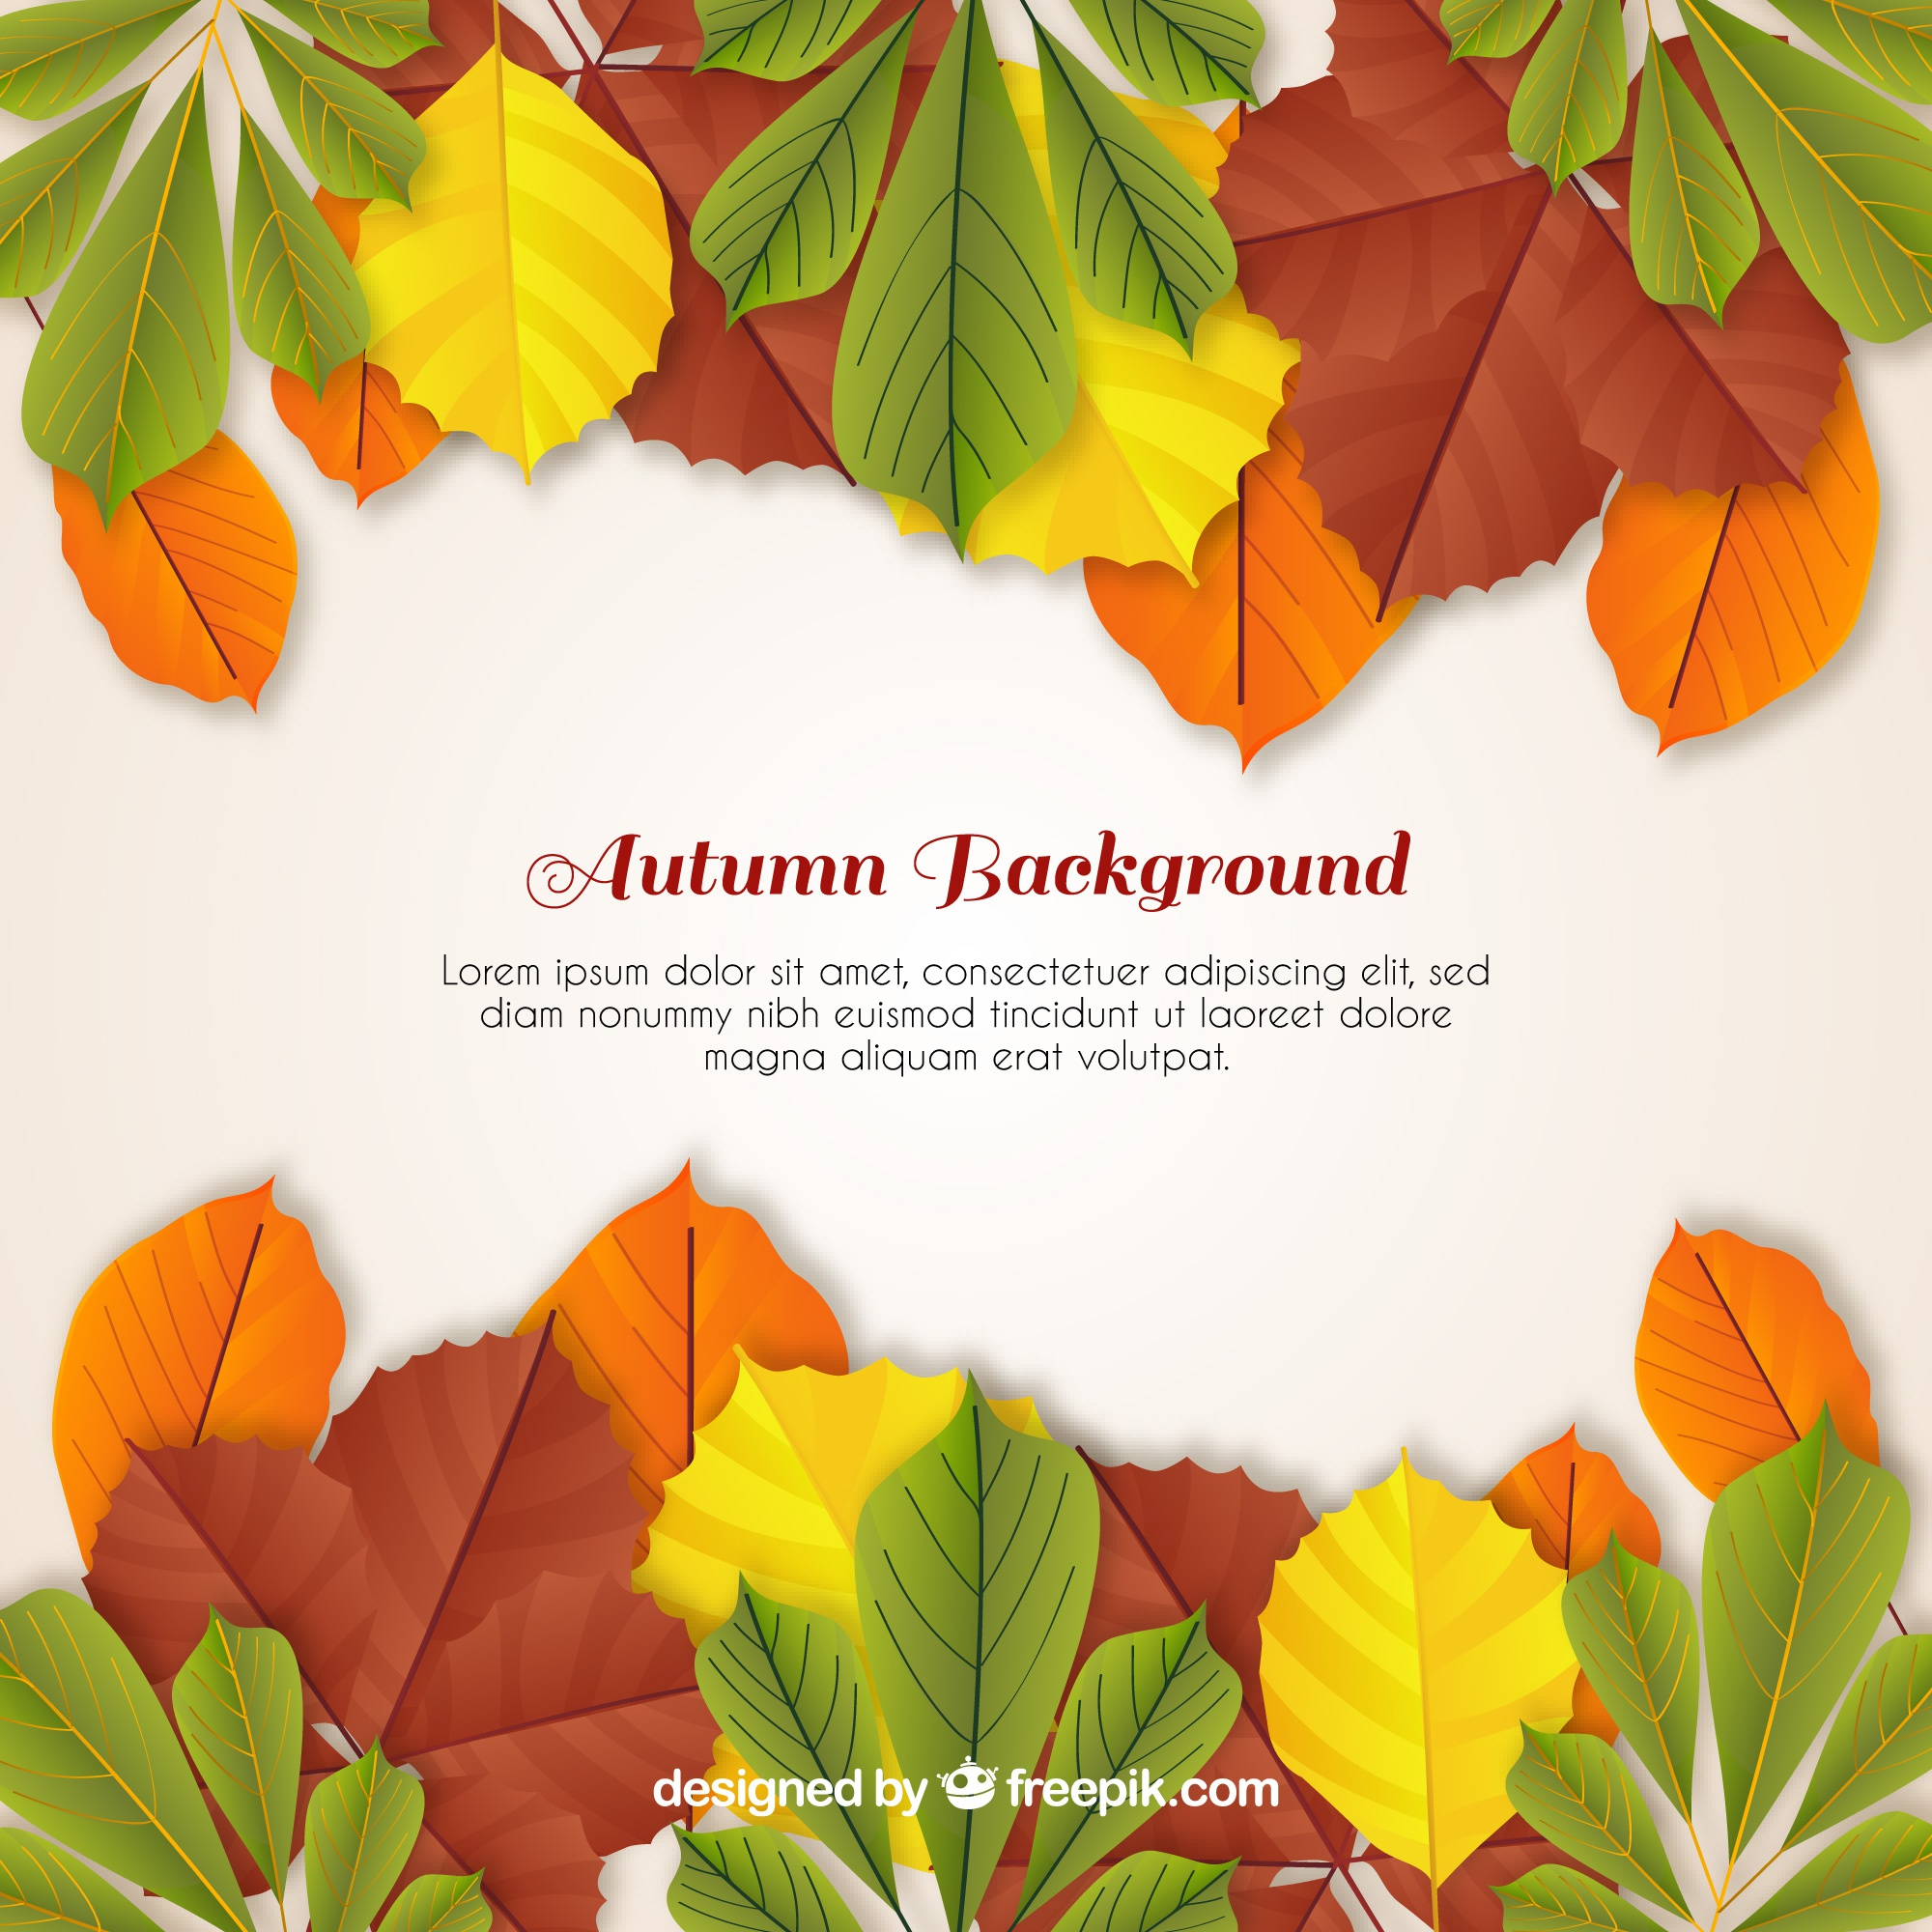 Autumn background with realistic design